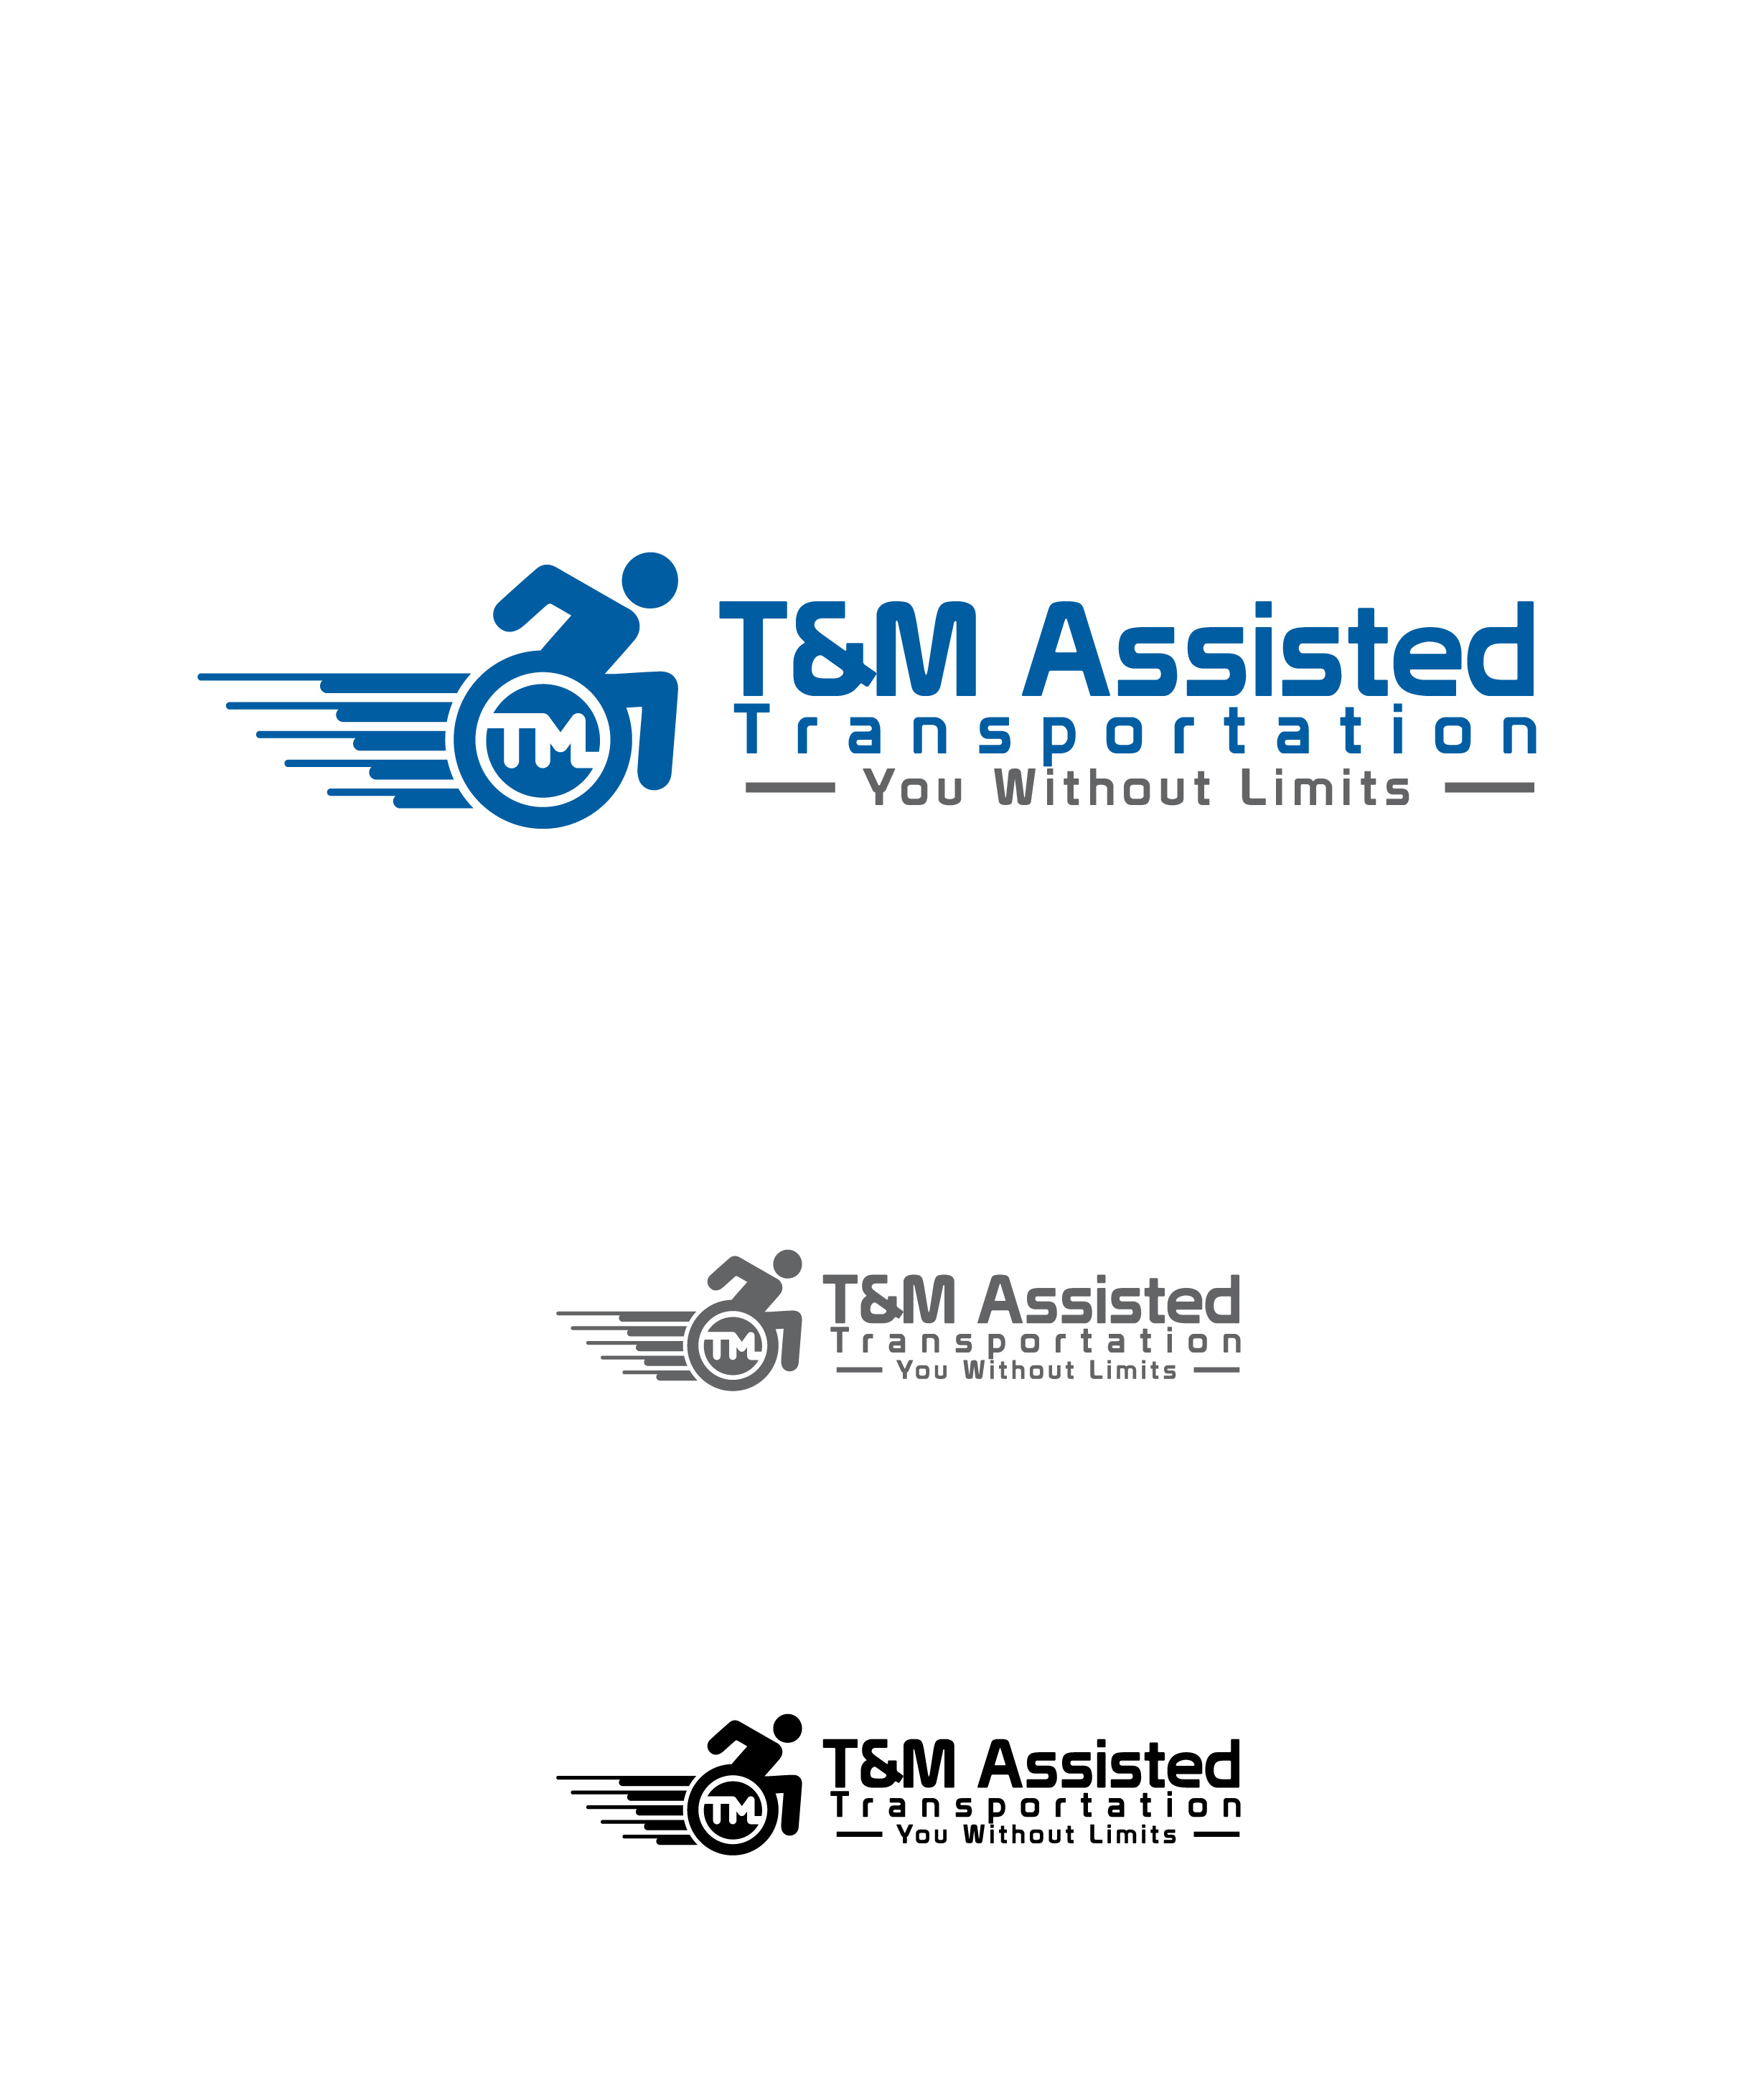 Logo Design by lagalag - Entry No. 43 in the Logo Design Contest Artistic Logo Design for T & M.